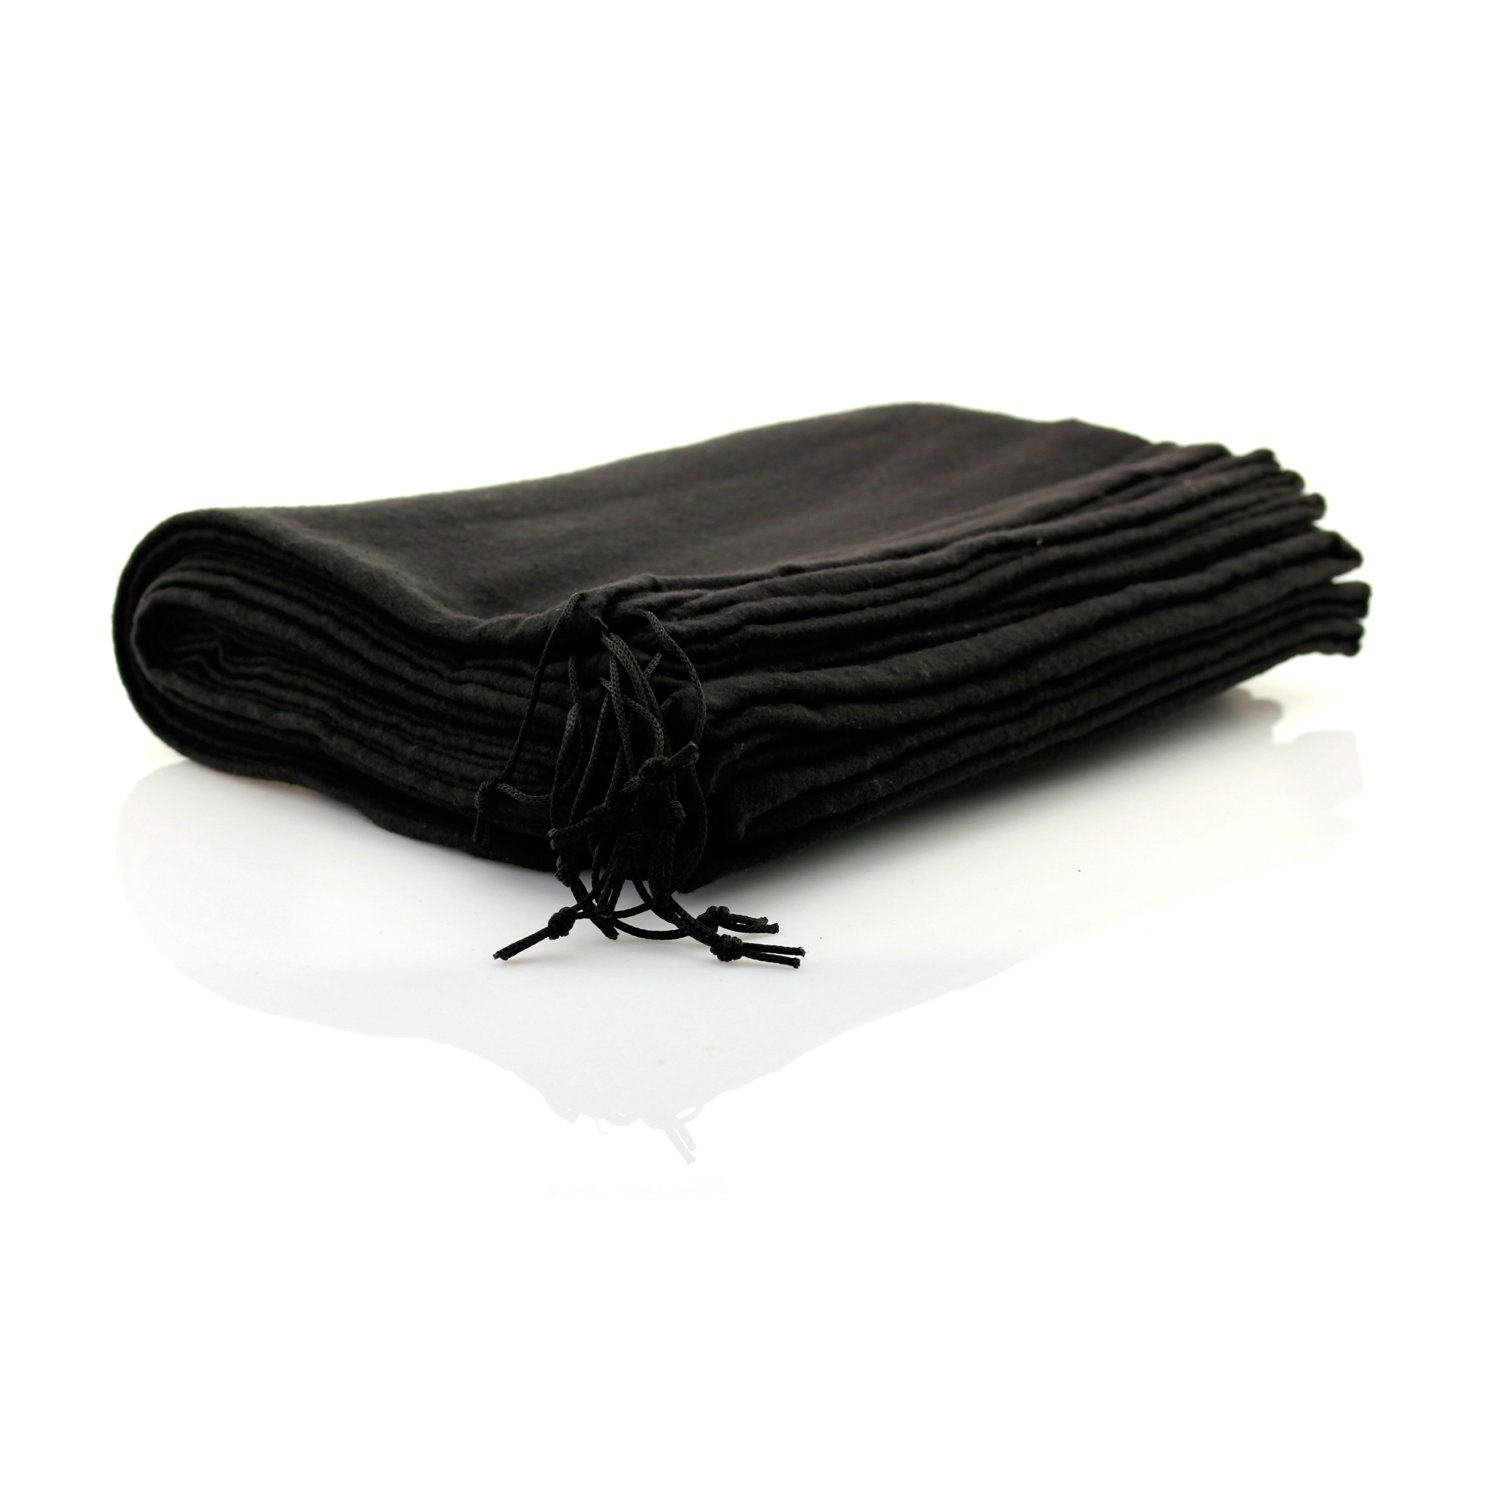 10 x Cotton Shoe Bag with Drawstring 37 x 27 CM Black Telmo ® 8002sw